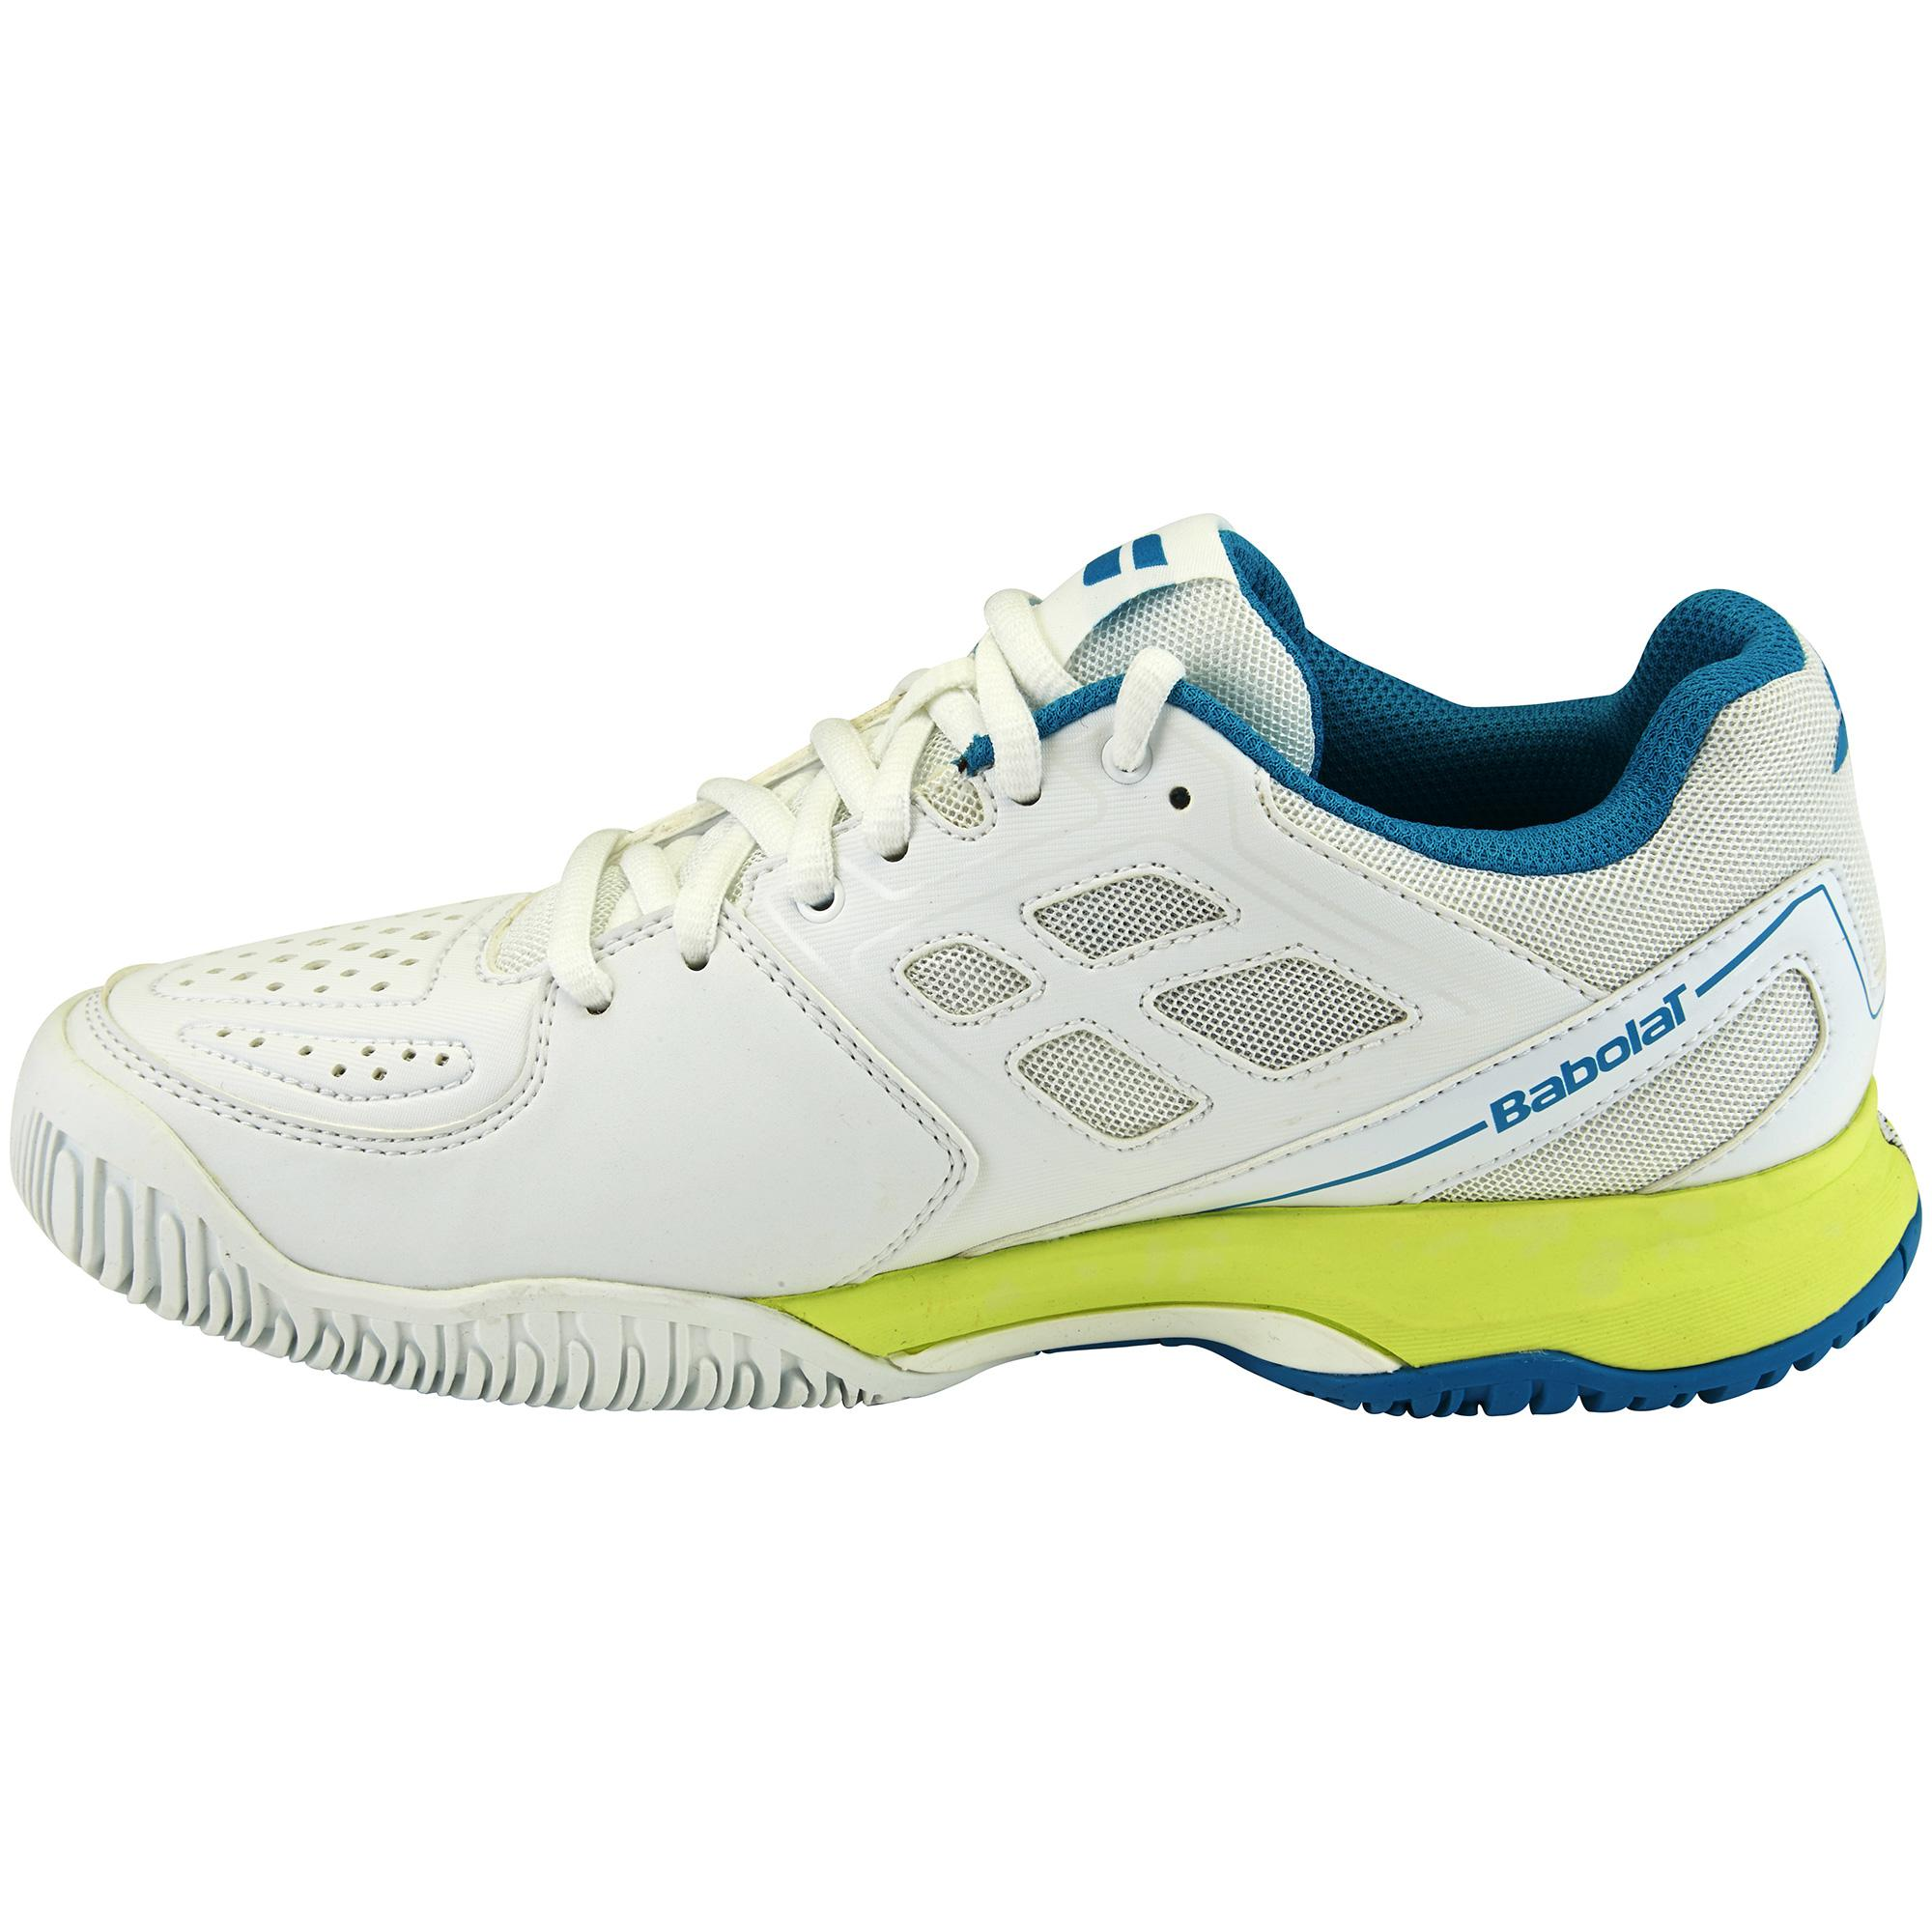 babolat womens pulsion all court tennis shoes white blue